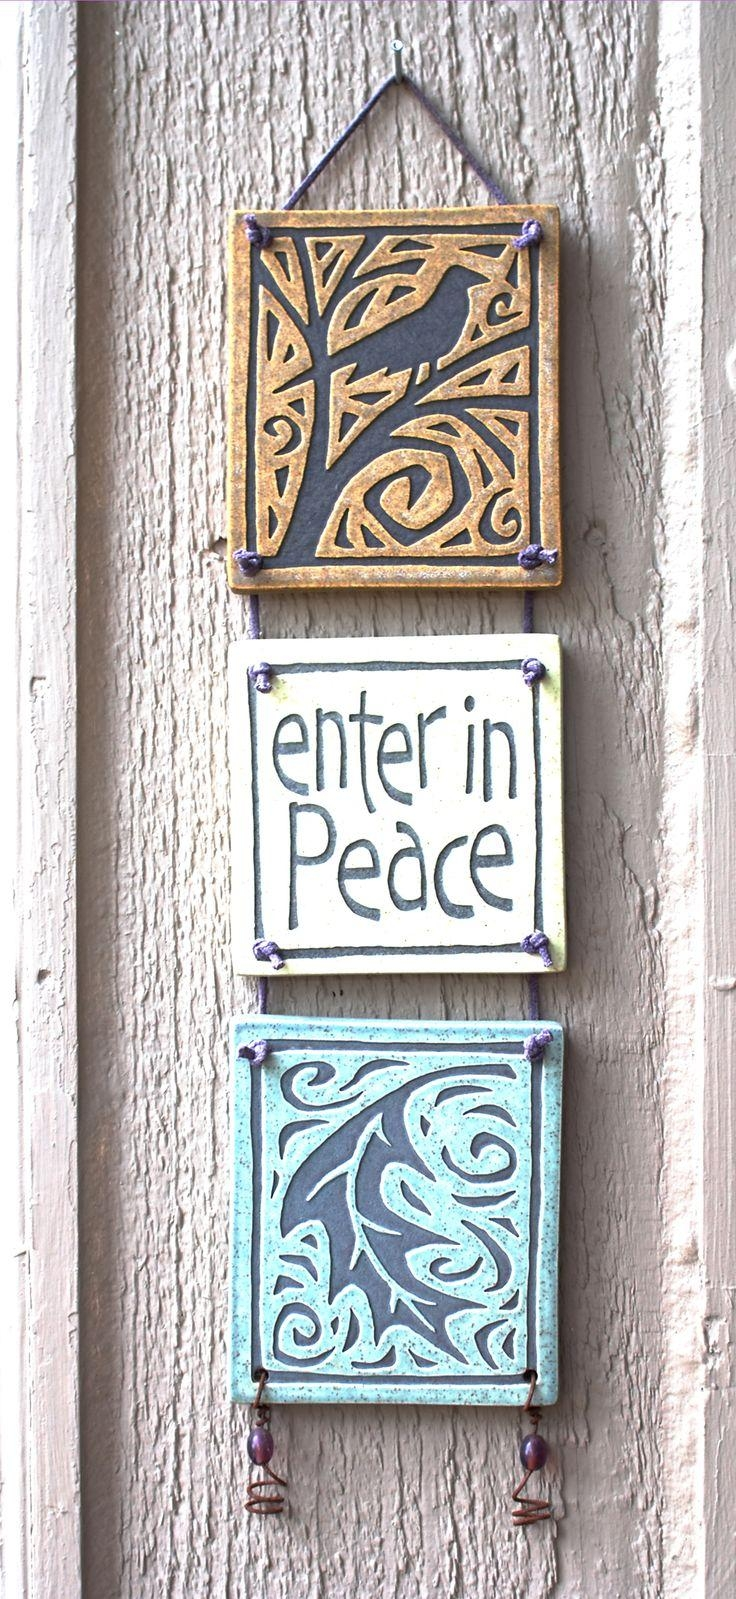 Best 25+ Ceramic Wall Art Ideas On Pinterest | Clay Wall Art, Clay Throughout Italian Ceramic Outdoor Wall Art (View 8 of 20)